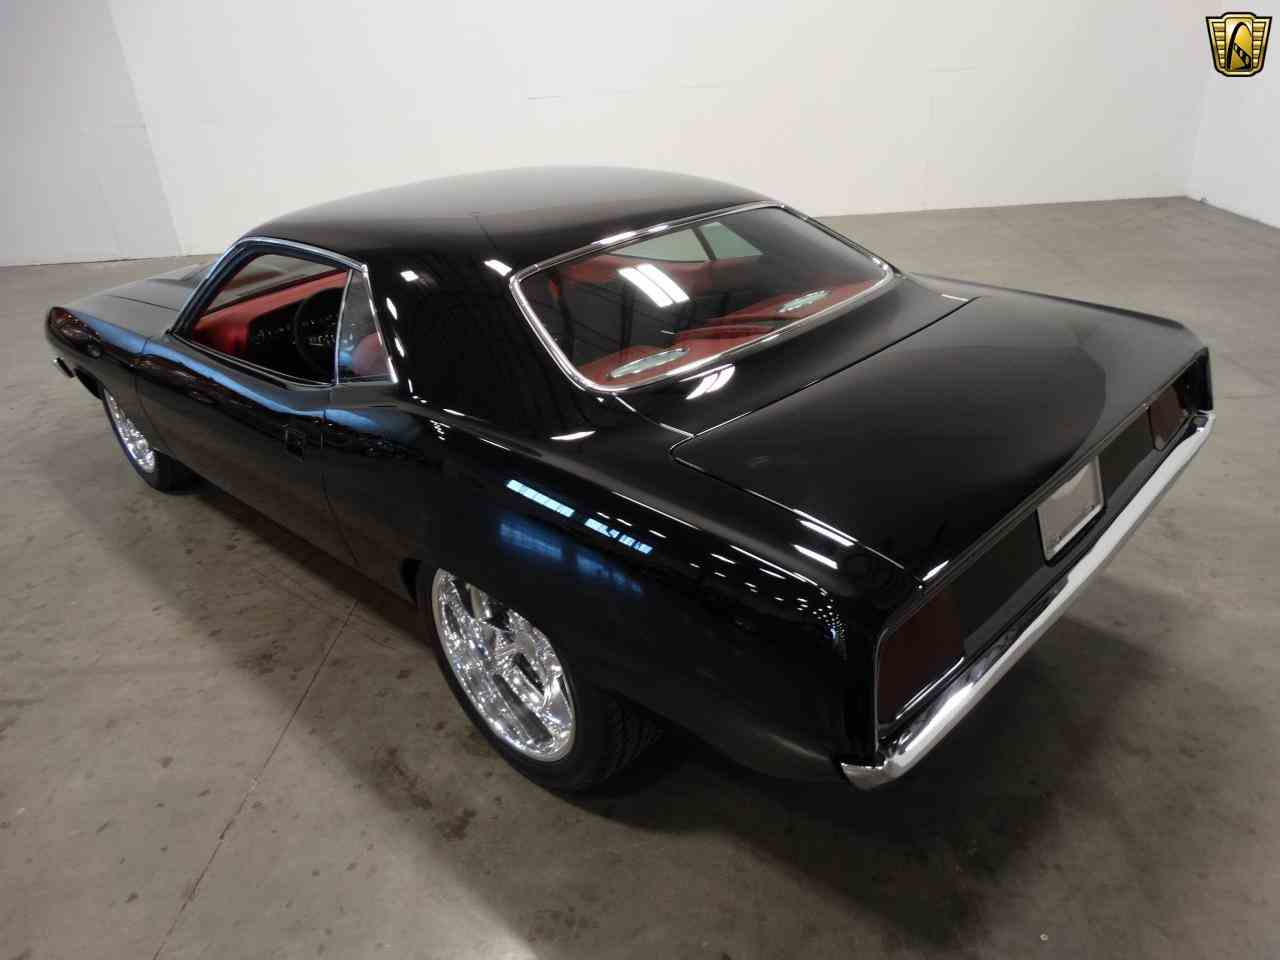 Large Picture of Classic '71 Plymouth Cuda located in Tennessee - $130,000.00 Offered by Gateway Classic Cars - Nashville - KDTL